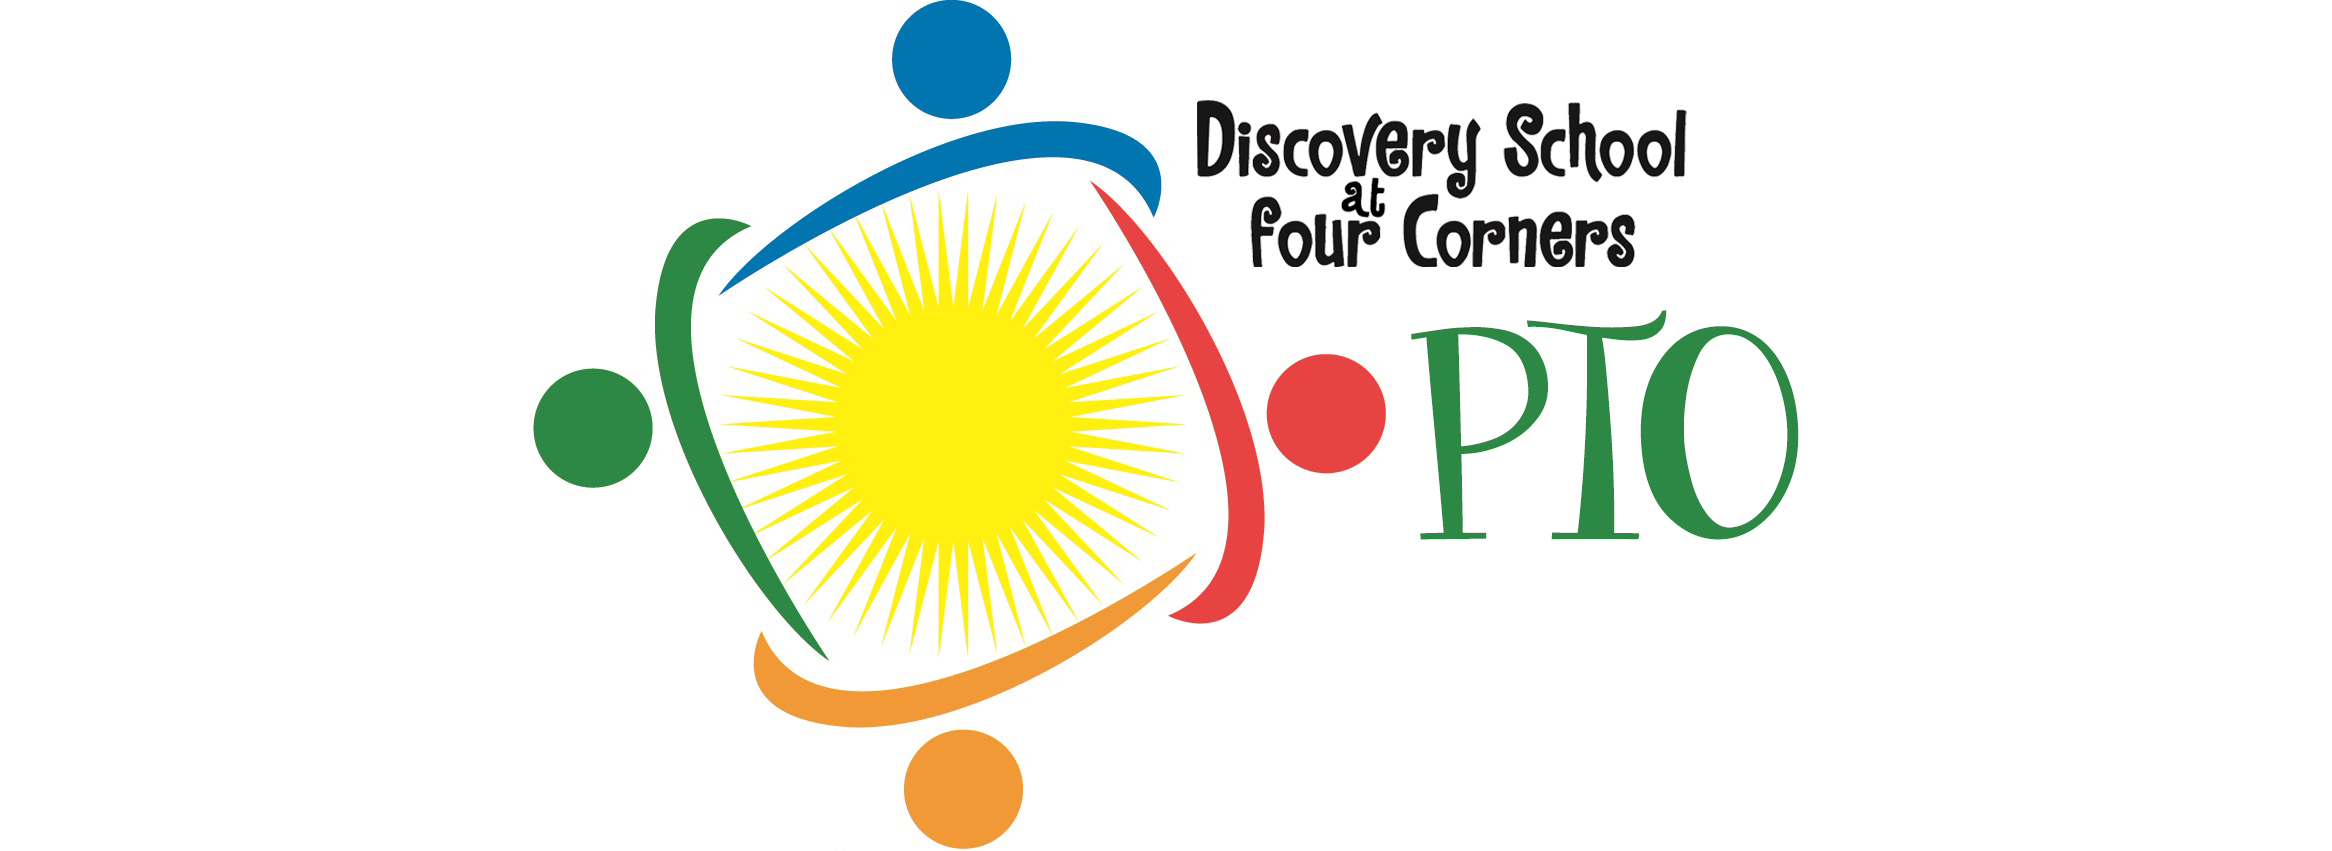 Discovery School at Four Corners PTO